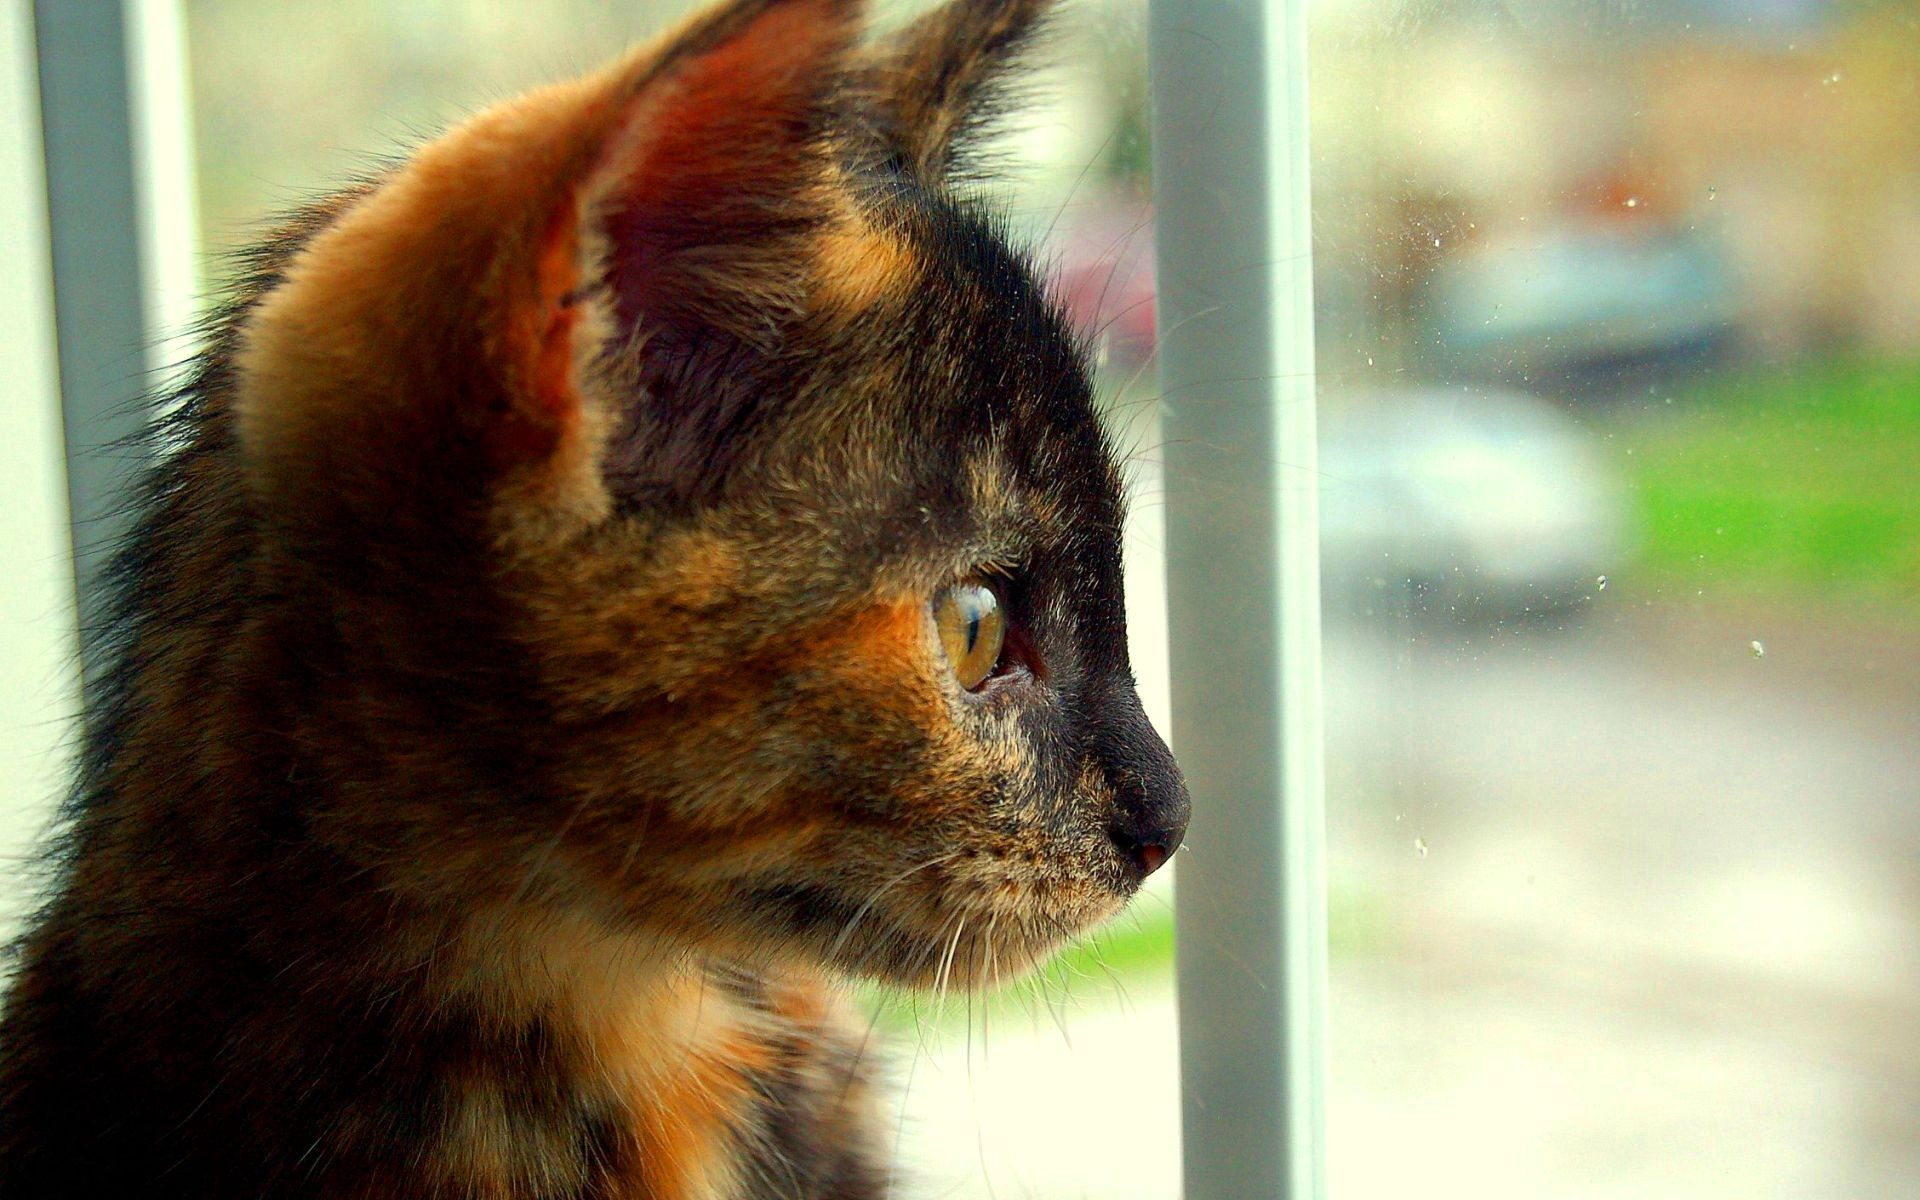 87658 download wallpaper Animals, Kitty, Kitten, Spotted, Spotty, Sight, Opinion, Profile screensavers and pictures for free